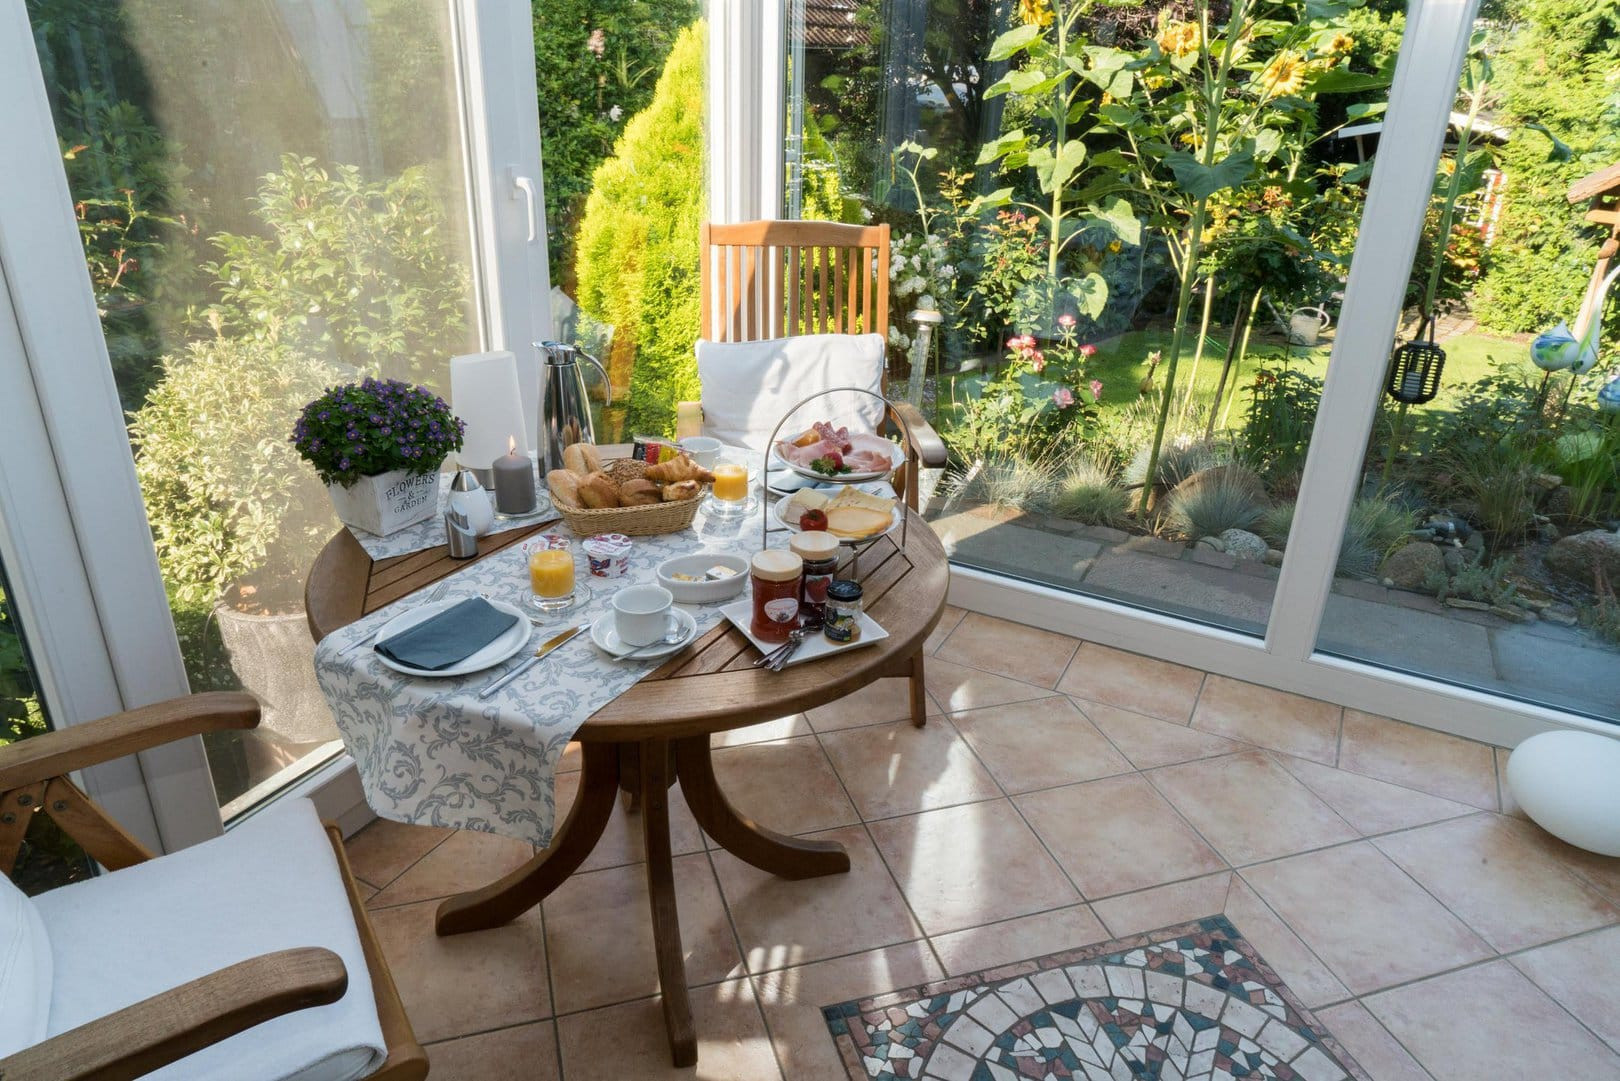 A wooden table set with a selection of breads, meat and cheese, as well as various jams, yoghurts and coffee. The table stands in a wintergarden, which is surrounded by a green garden.